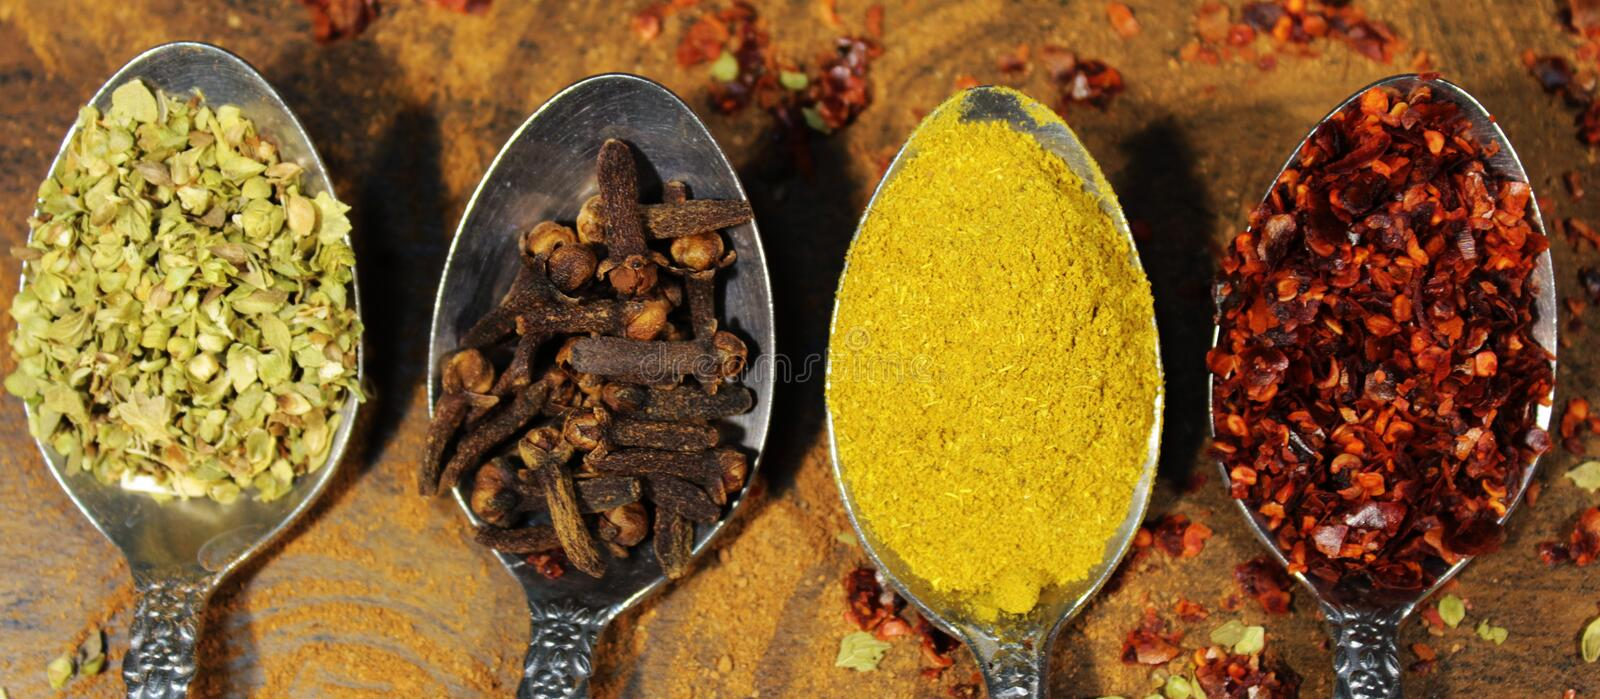 Spice spoon. Spoon yellow spices food kitchen royalty free stock photos